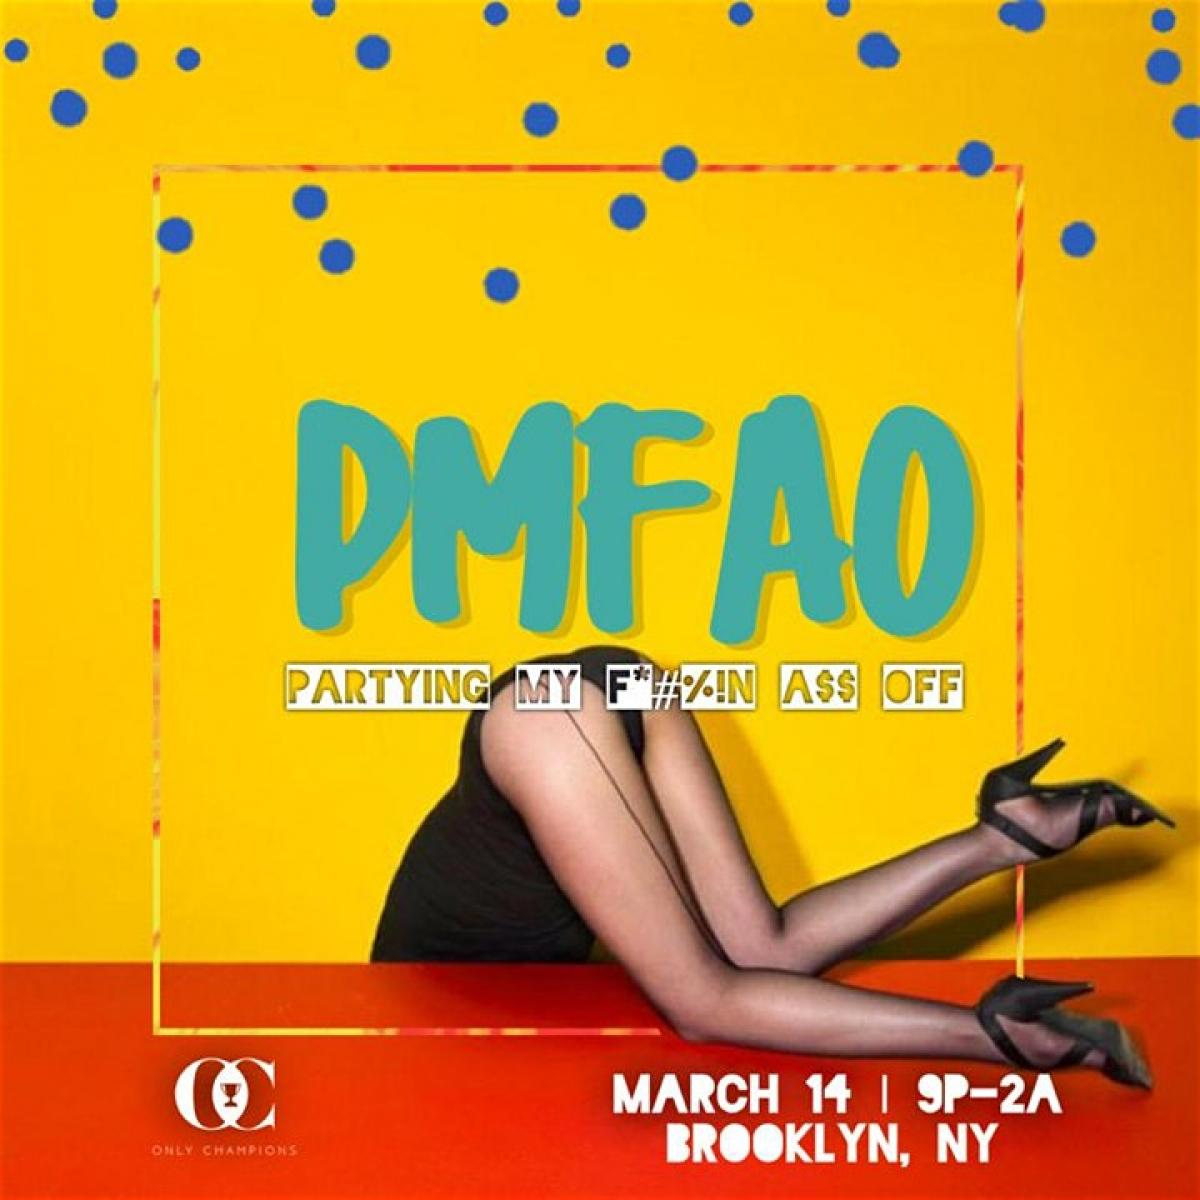 PMFAO flyer or graphic.